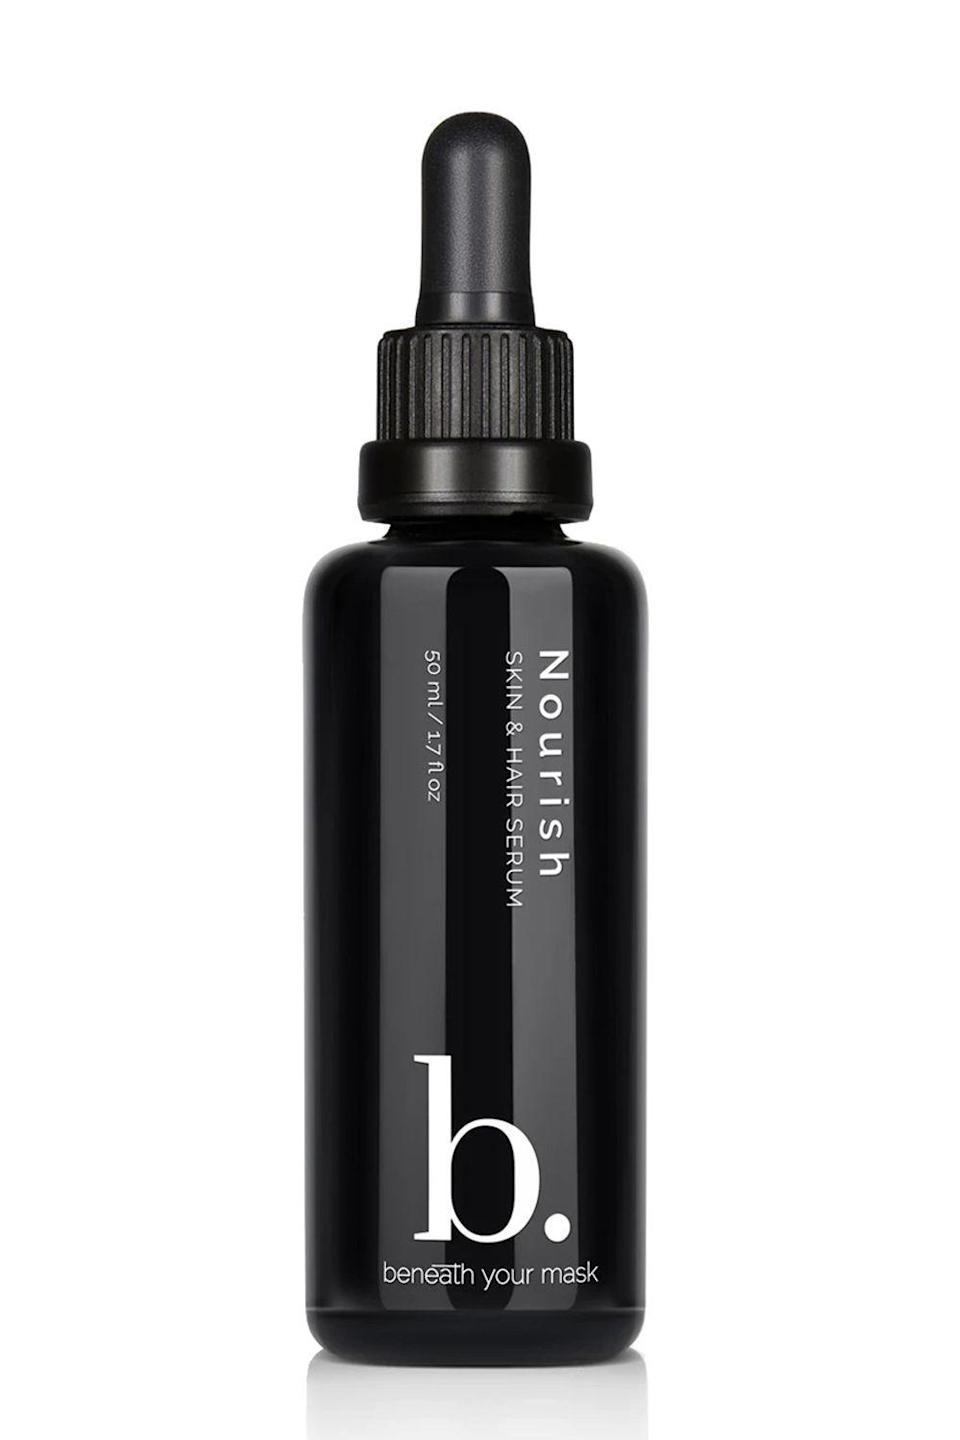 """<p><strong>Beneath Your Mask</strong></p><p>credobeauty.com</p><p><strong>$60.00</strong></p><p><a href=""""https://go.redirectingat.com?id=74968X1596630&url=https%3A%2F%2Fcredobeauty.com%2Fproducts%2Fnourish-skin-hair-serum&sref=https%3A%2F%2Fwww.cosmopolitan.com%2Fstyle-beauty%2Fbeauty%2Fg33995669%2Fbest-body-serums%2F"""" rel=""""nofollow noopener"""" target=""""_blank"""" data-ylk=""""slk:Shop Now"""" class=""""link rapid-noclick-resp"""">Shop Now</a></p><p>This body serum can be used on your skin <em>and</em> on your hair, making it the perfect two-in-one option. It's full of pure plant oils, vitamins B, C, and E, and fatty acids to<strong> nourish and moisturize dry skin and damaged hair.</strong> Just massage a few drops into damp skin or mix a little bit with your favorite <a href=""""https://www.cosmopolitan.com/style-beauty/beauty/g25606392/best-leave-in-hair-conditioner/"""" rel=""""nofollow noopener"""" target=""""_blank"""" data-ylk=""""slk:leave-in conditioner"""" class=""""link rapid-noclick-resp"""">leave-in conditioner</a> before styling.</p>"""